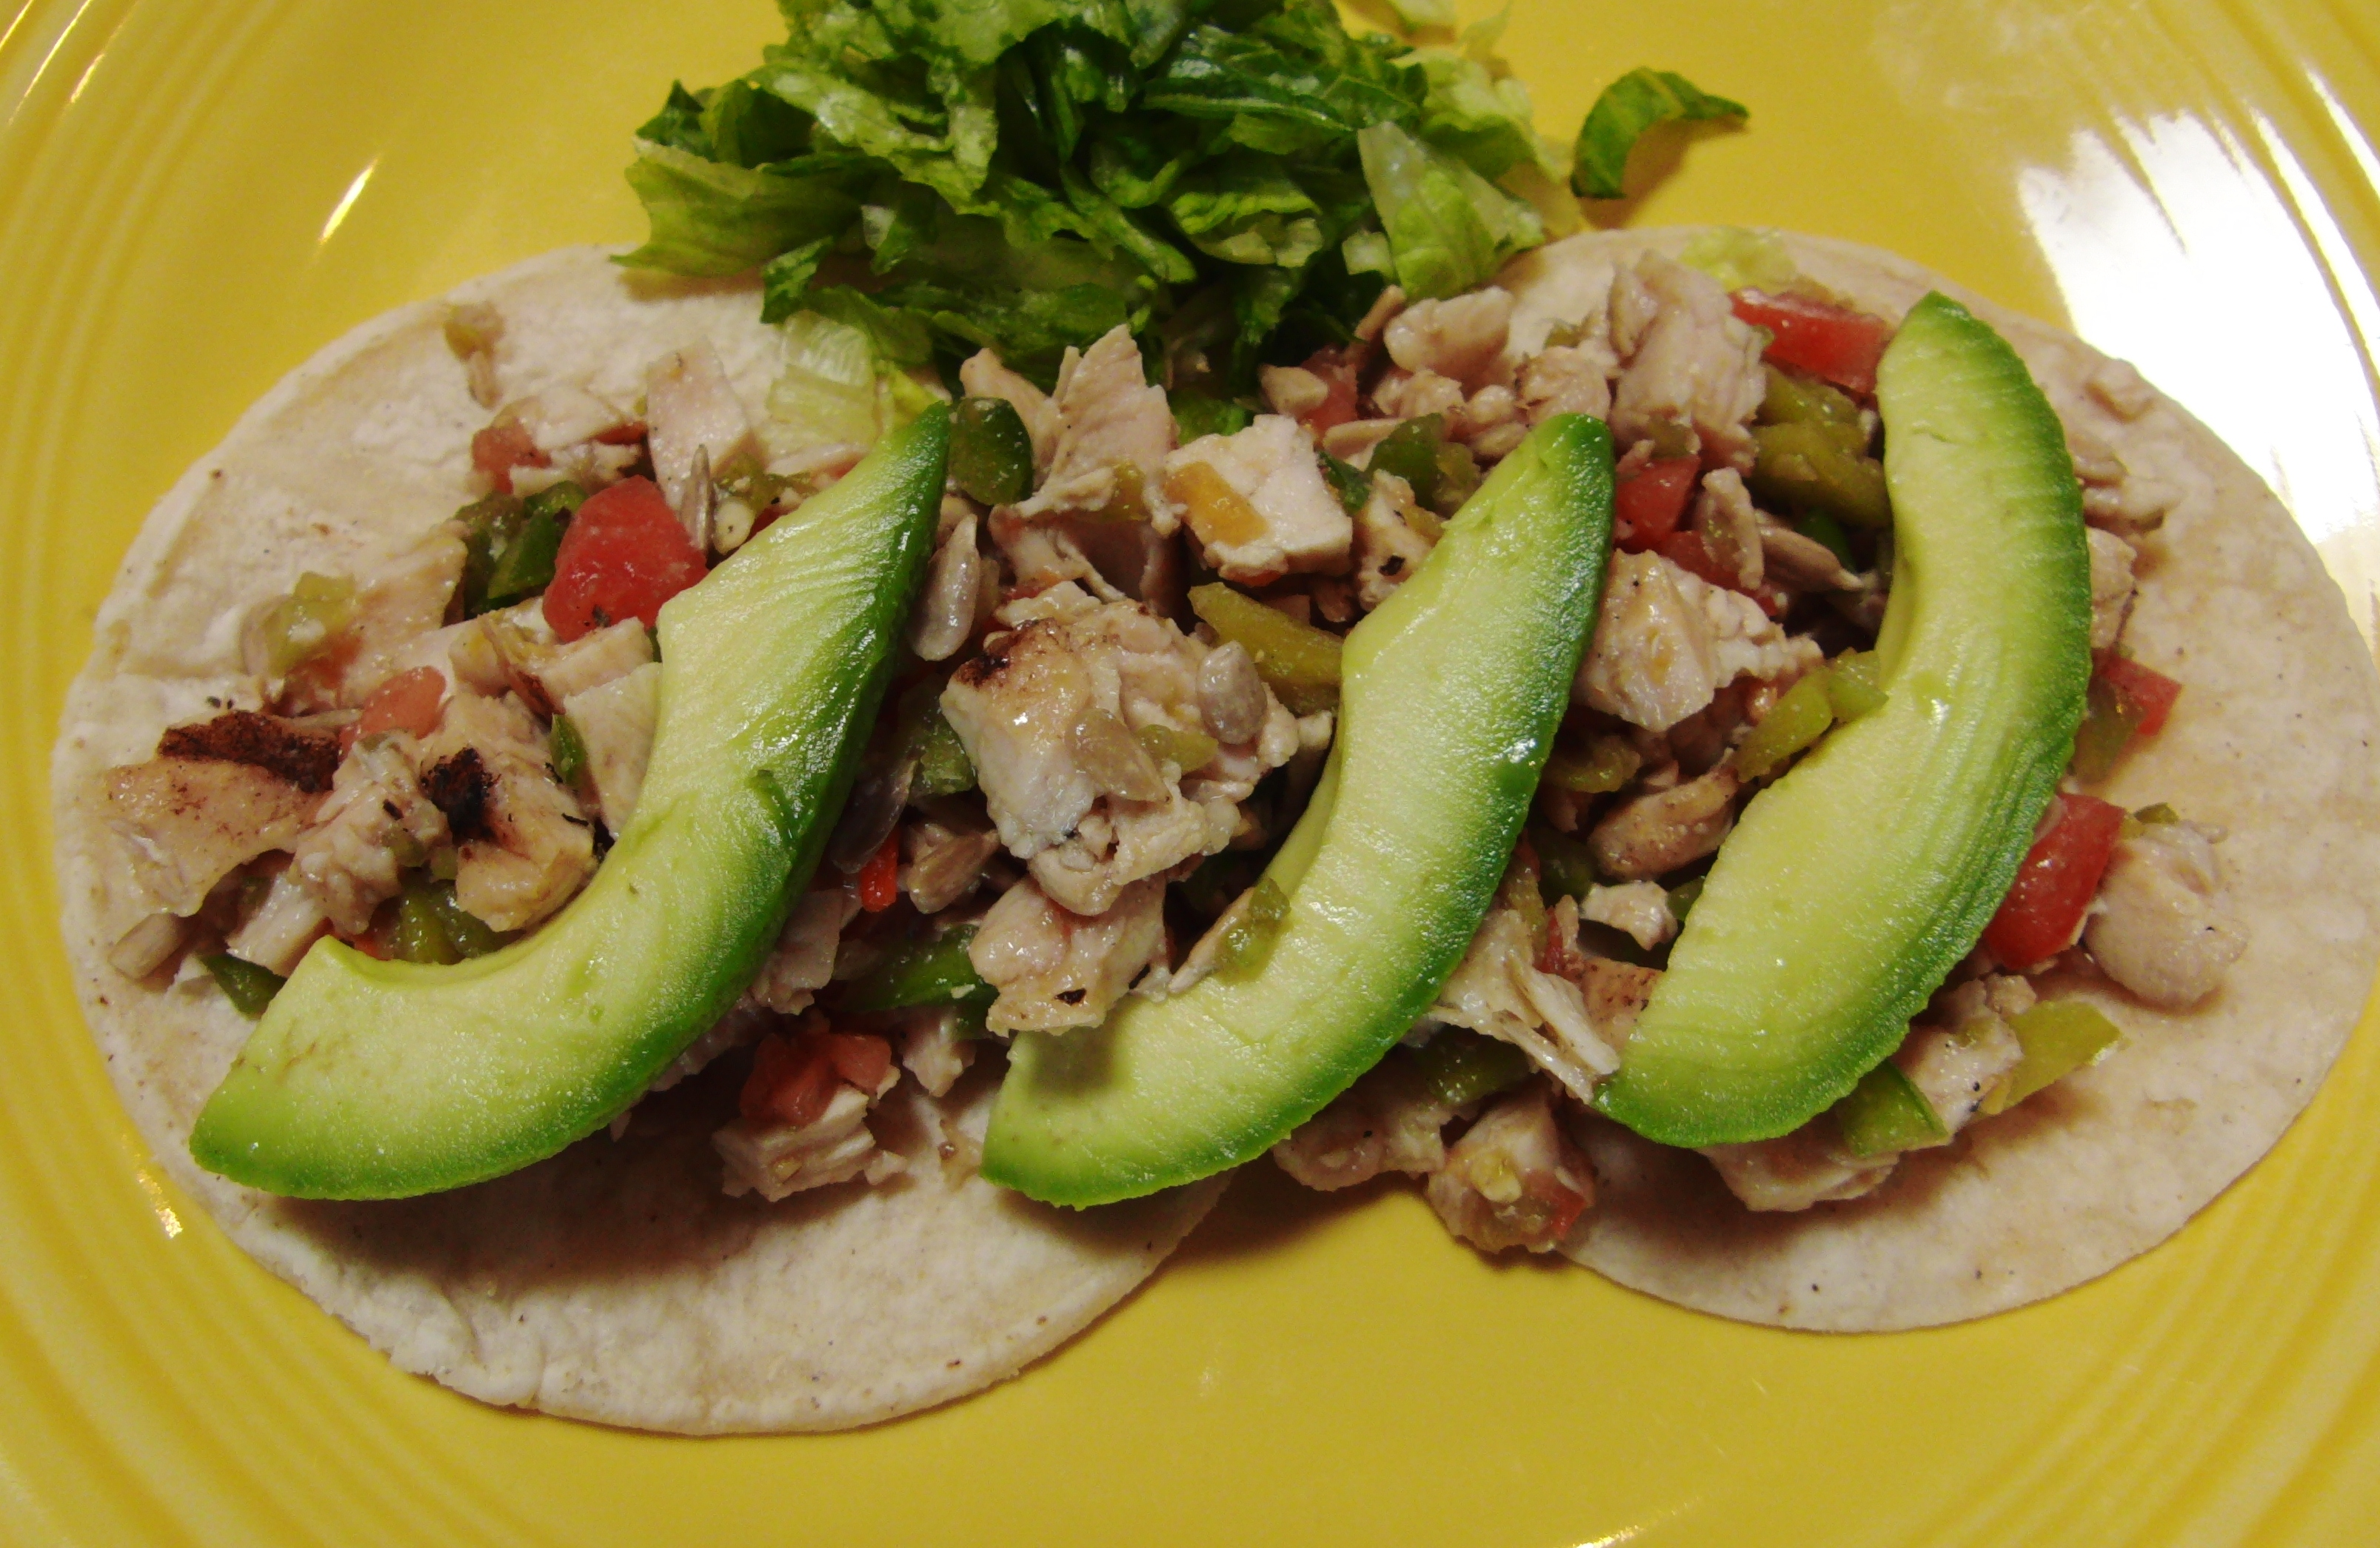 This taco is colorful and full of flavor and texture. Top it with a ...